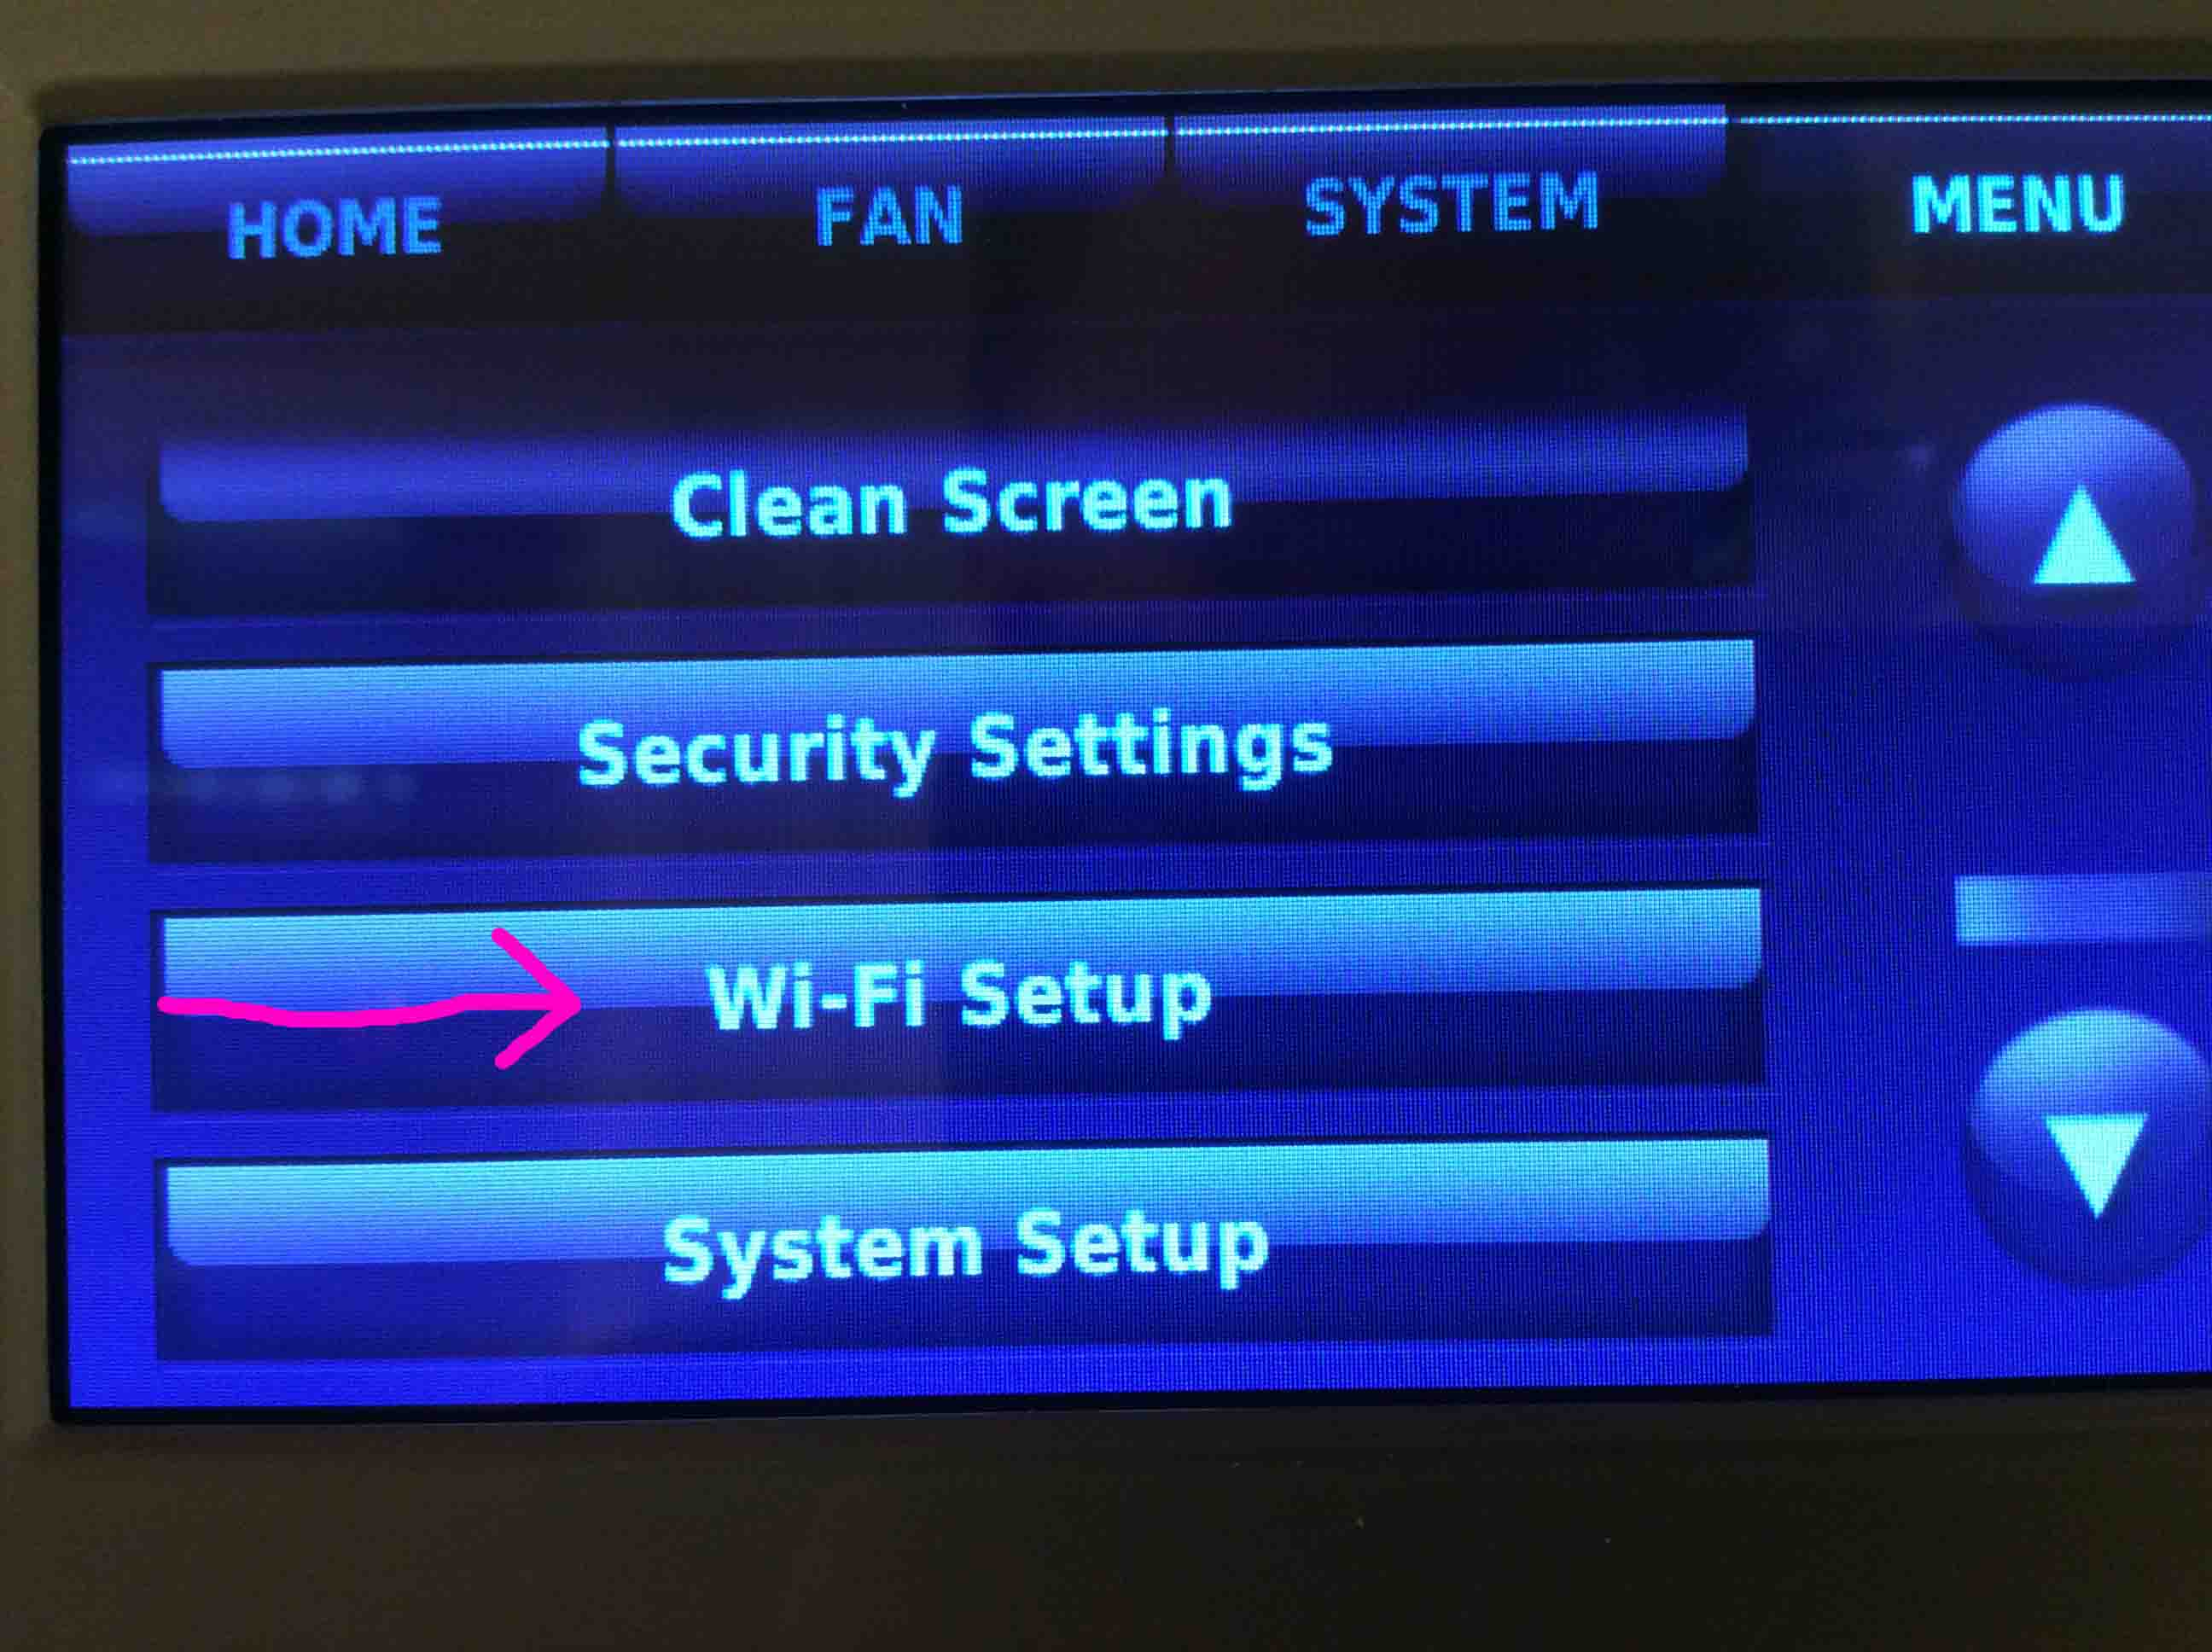 Troubleshooting Honeywell Thermostat Wifi Problems Rth9580wf Toms Setup Instructions Picture Of A Wi Fi Touchscreen With The